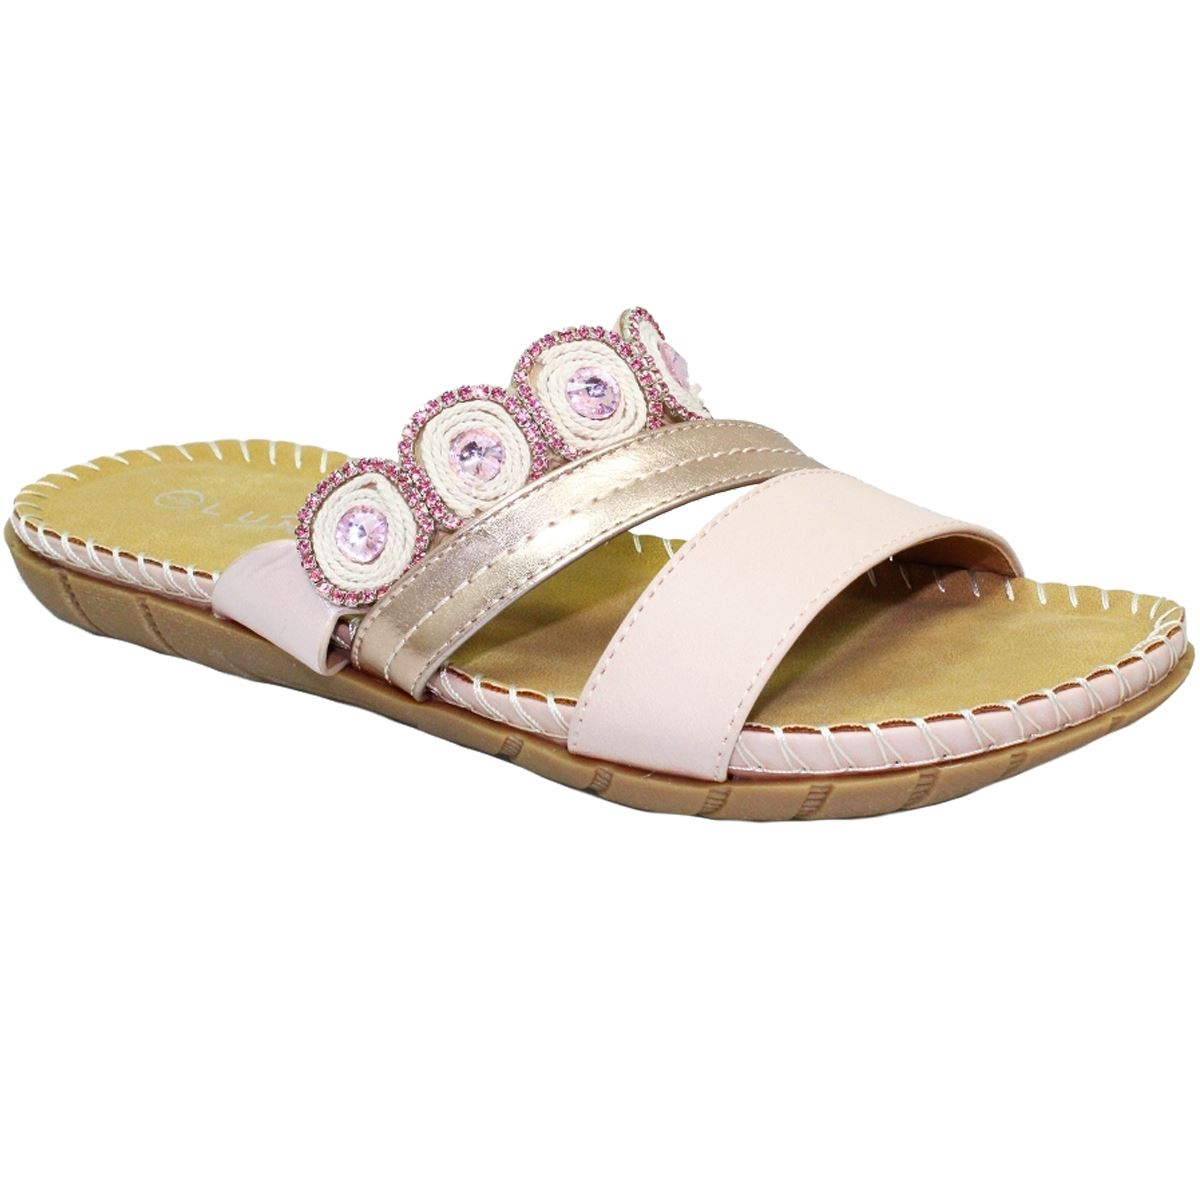 TAMARIS TURQUOISE METALLIC EMBELLISHED LEATHER SANDALS CUSHIONED INSOLE BUCKLE